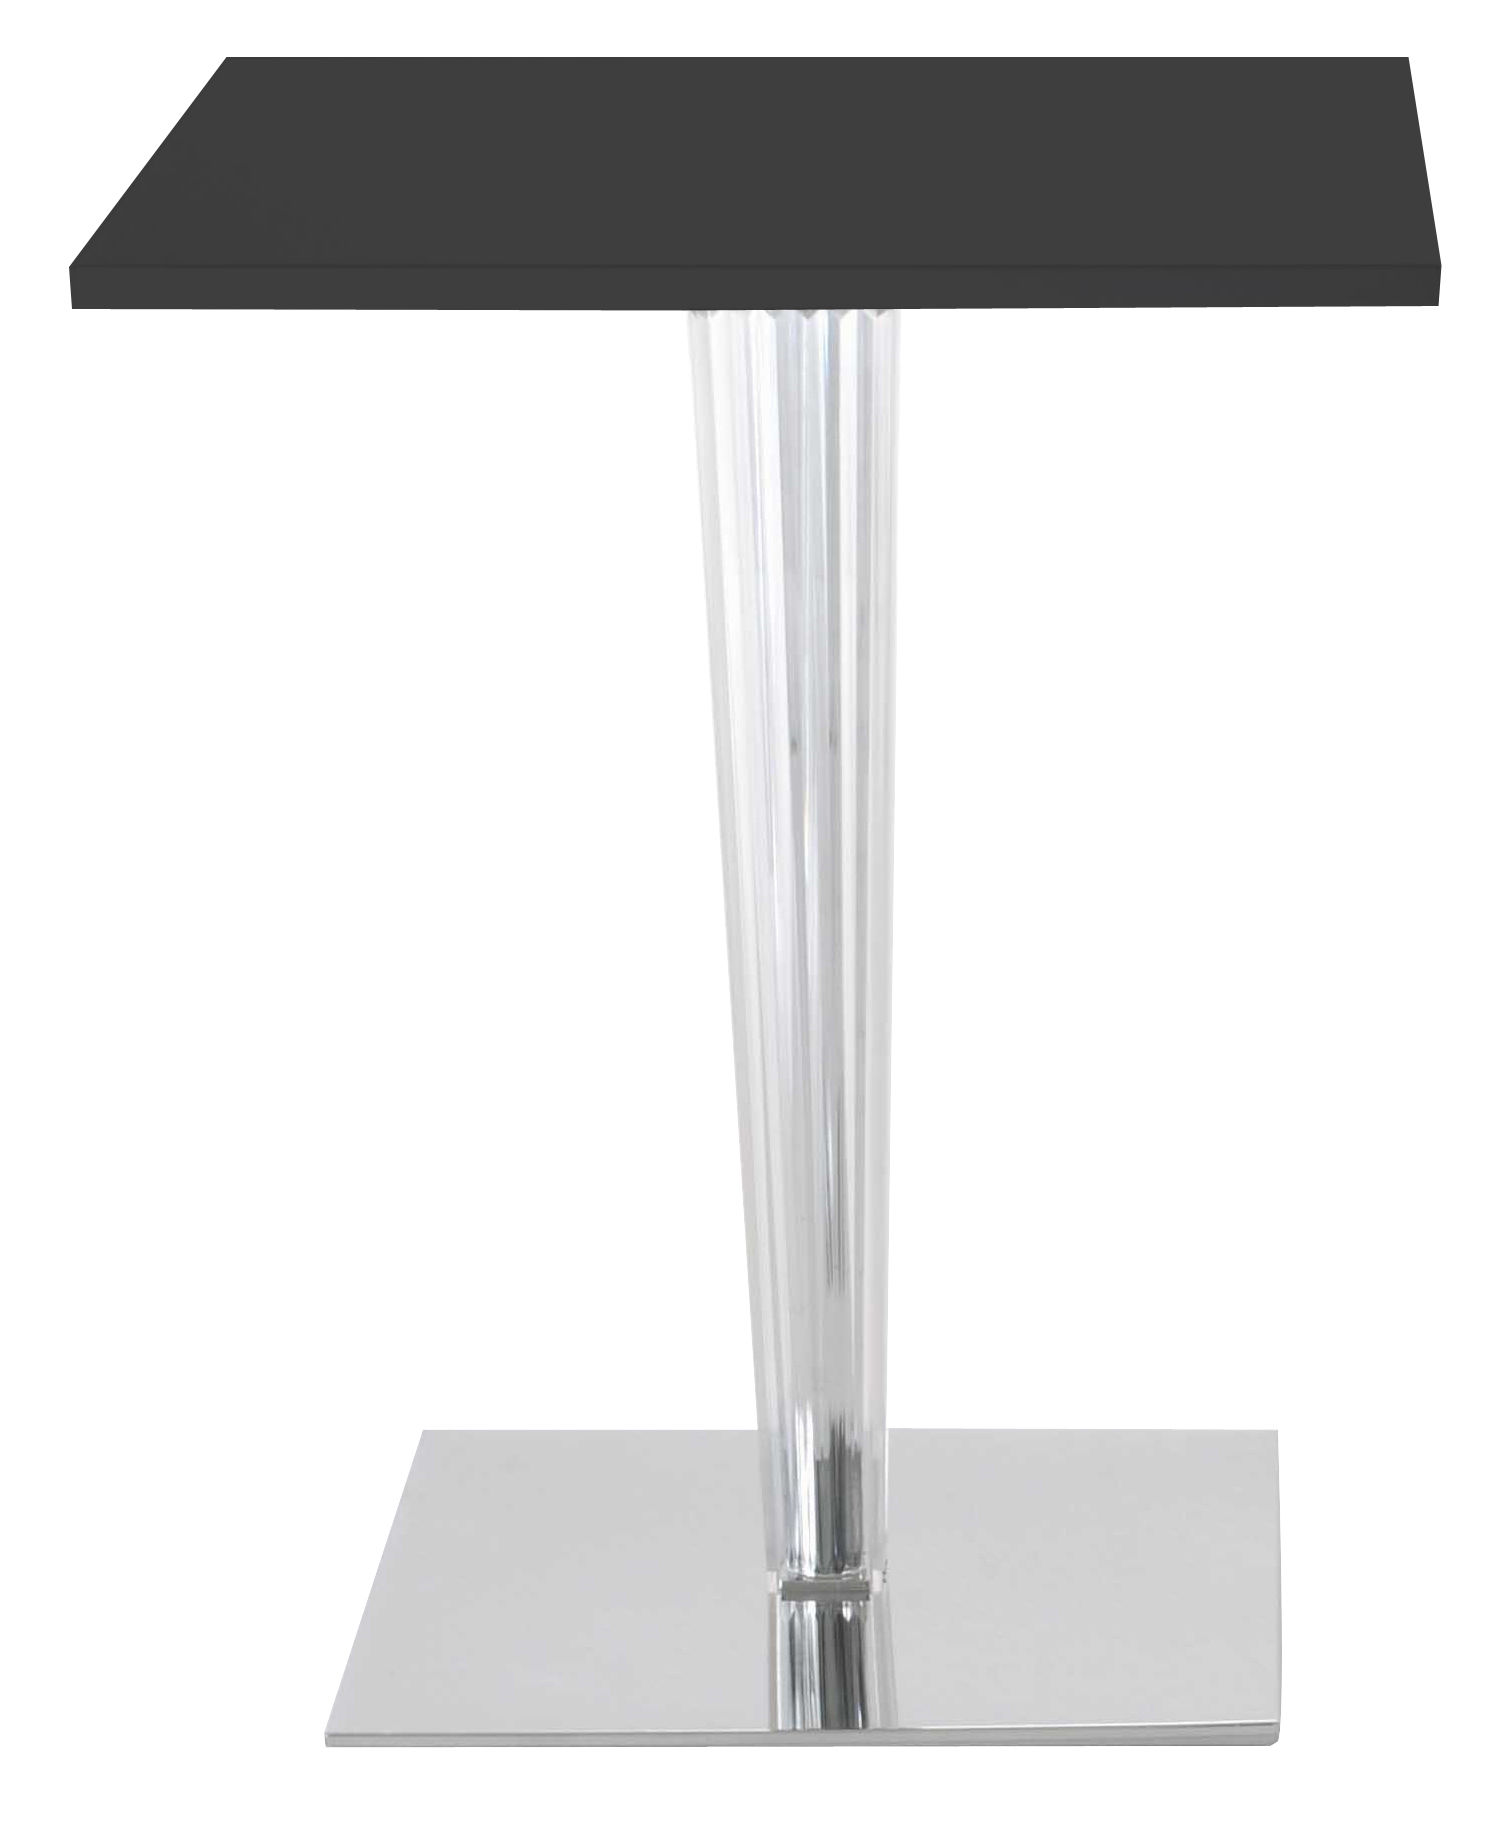 Furniture - Dining Tables - Top Top Square table - Lacquered square table top by Kartell - Black/ square leg - Aluminium, Lacquered polyester, PMMA